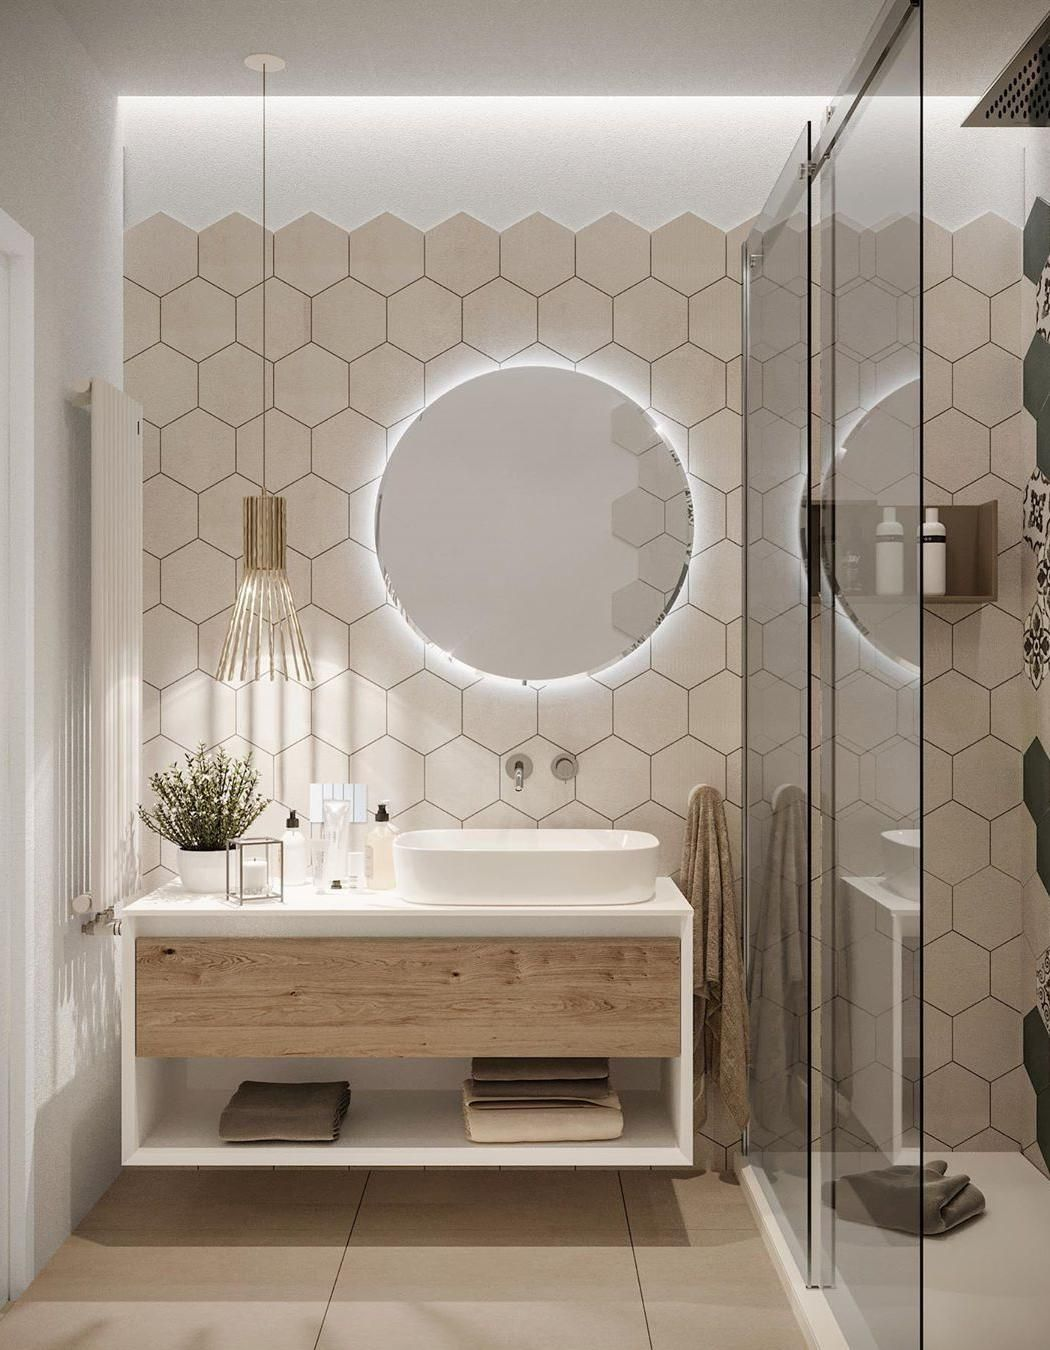 Indian Home Decor 50 Small Bathroom Design Ideas For 2020 These Trendy Home Decor Ideas Would In 2020 Bathroom Interior Bathroom Interior Design Bathroom Design Small